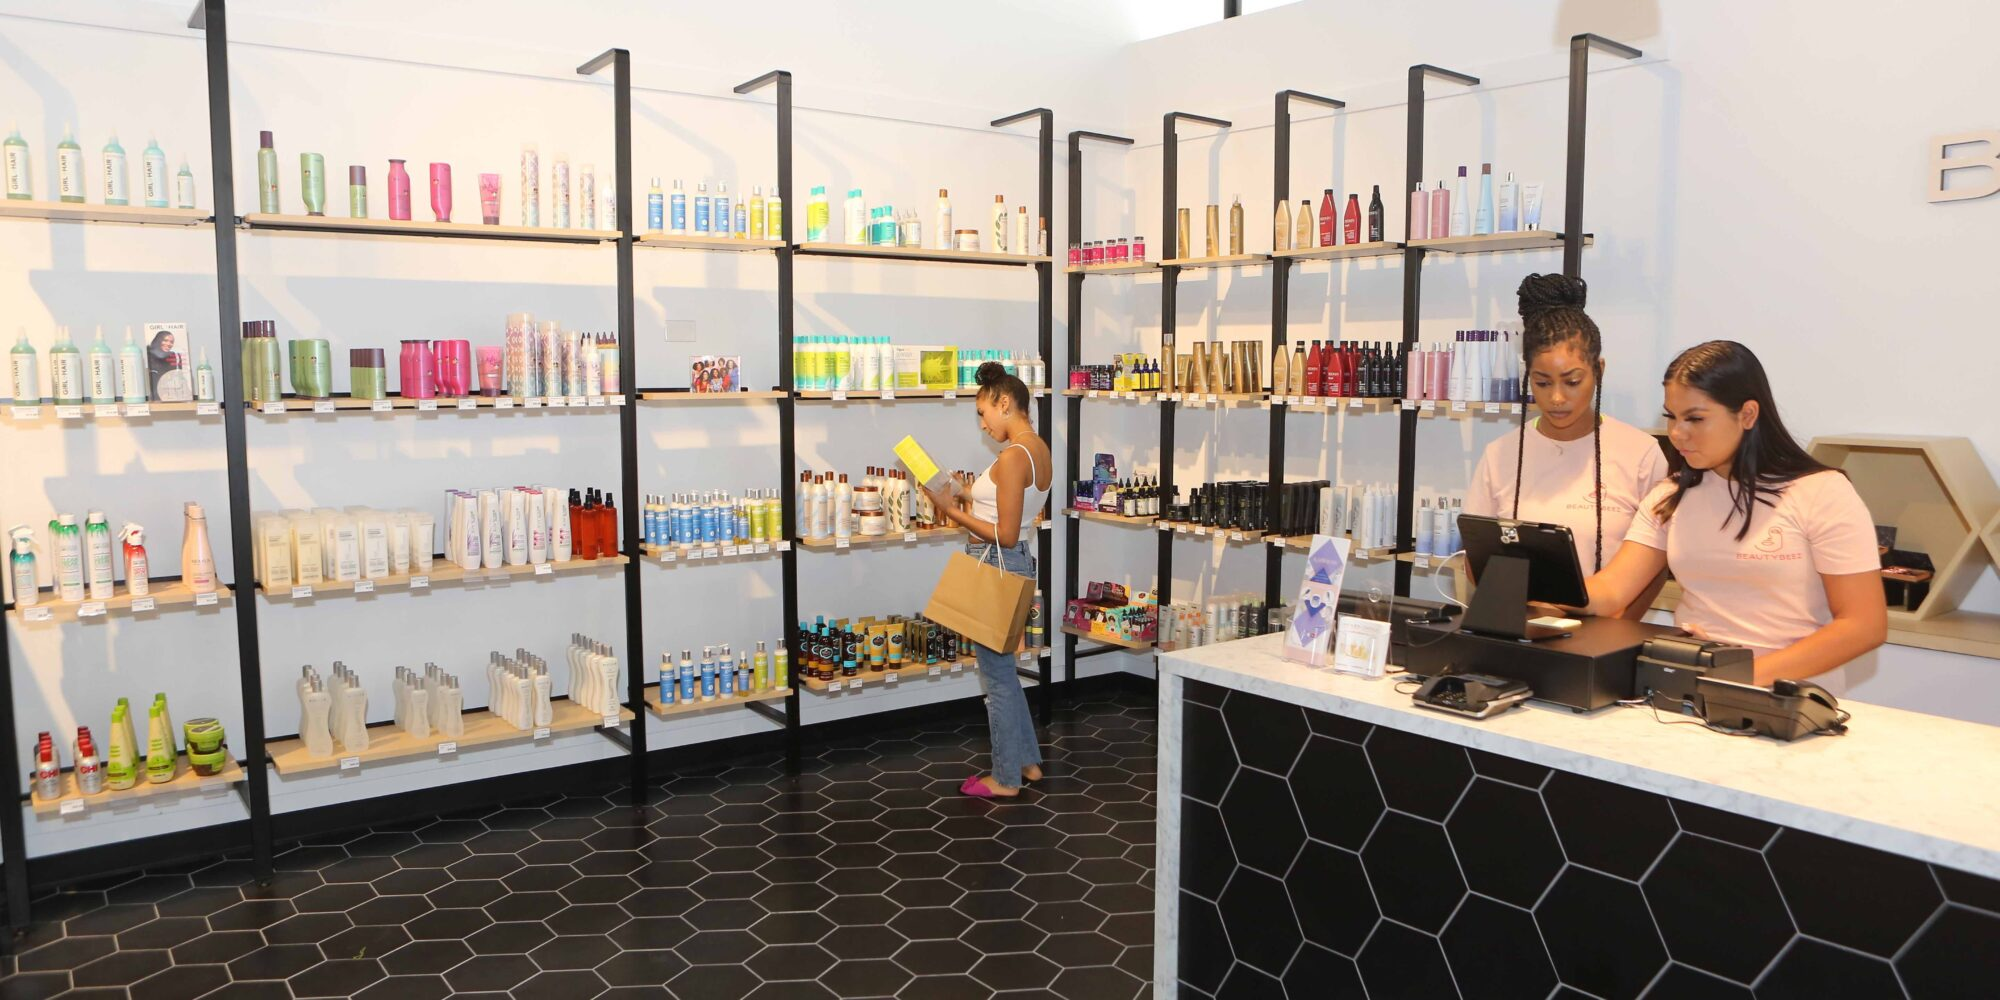 Checking In With Stores On The Hottest Products And Trends In Beauty